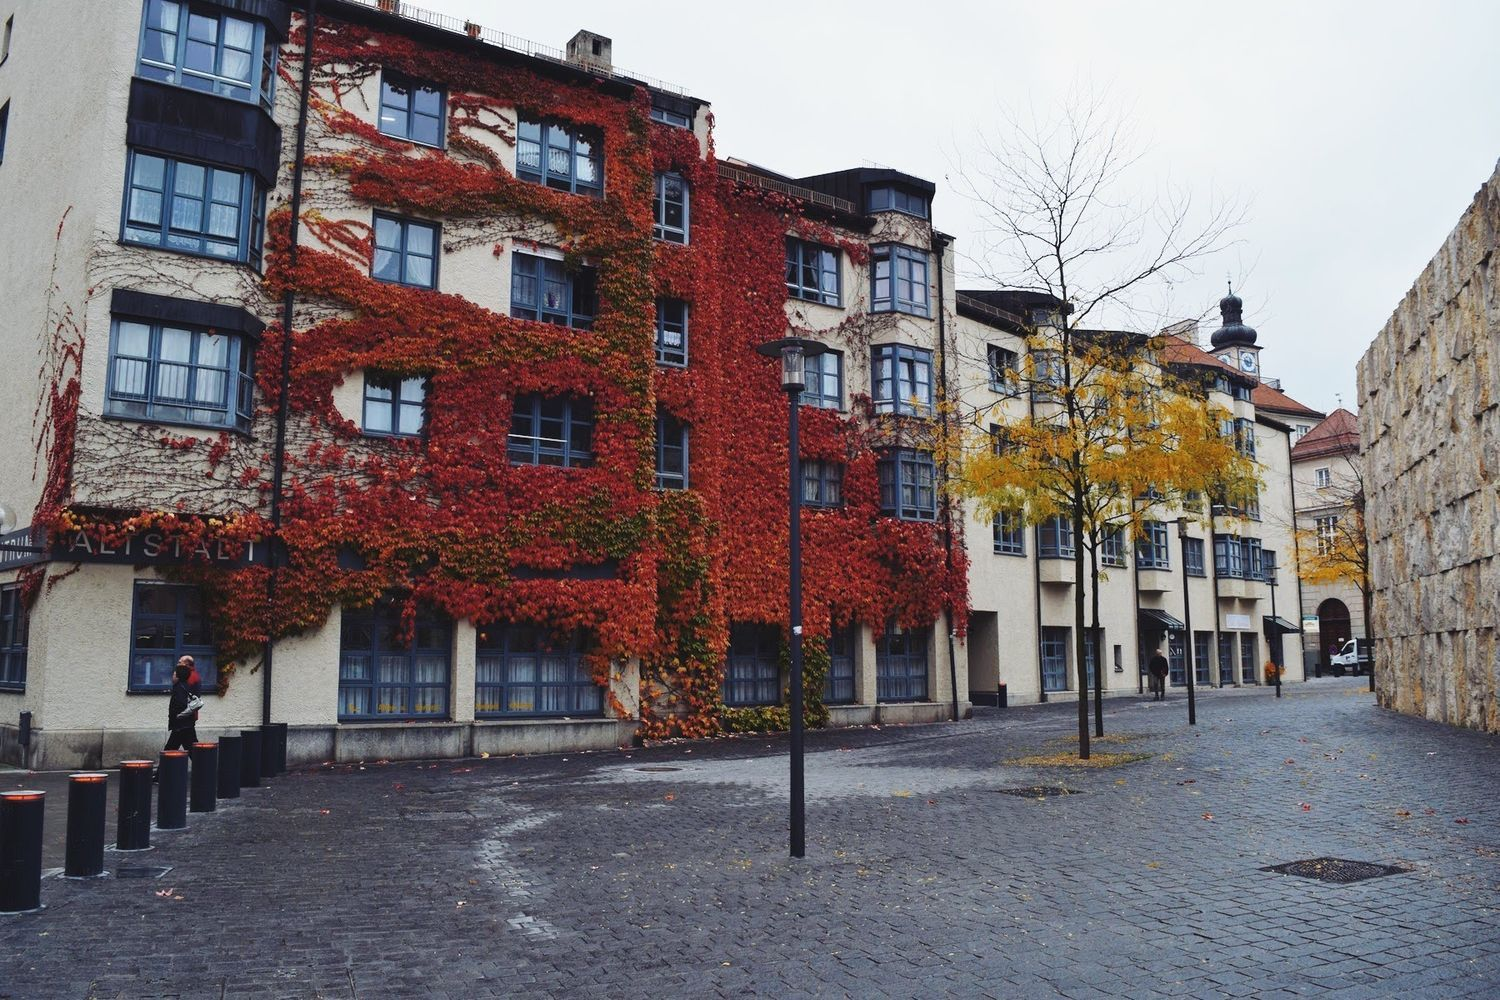 Ivy-covered Buildings in Munich